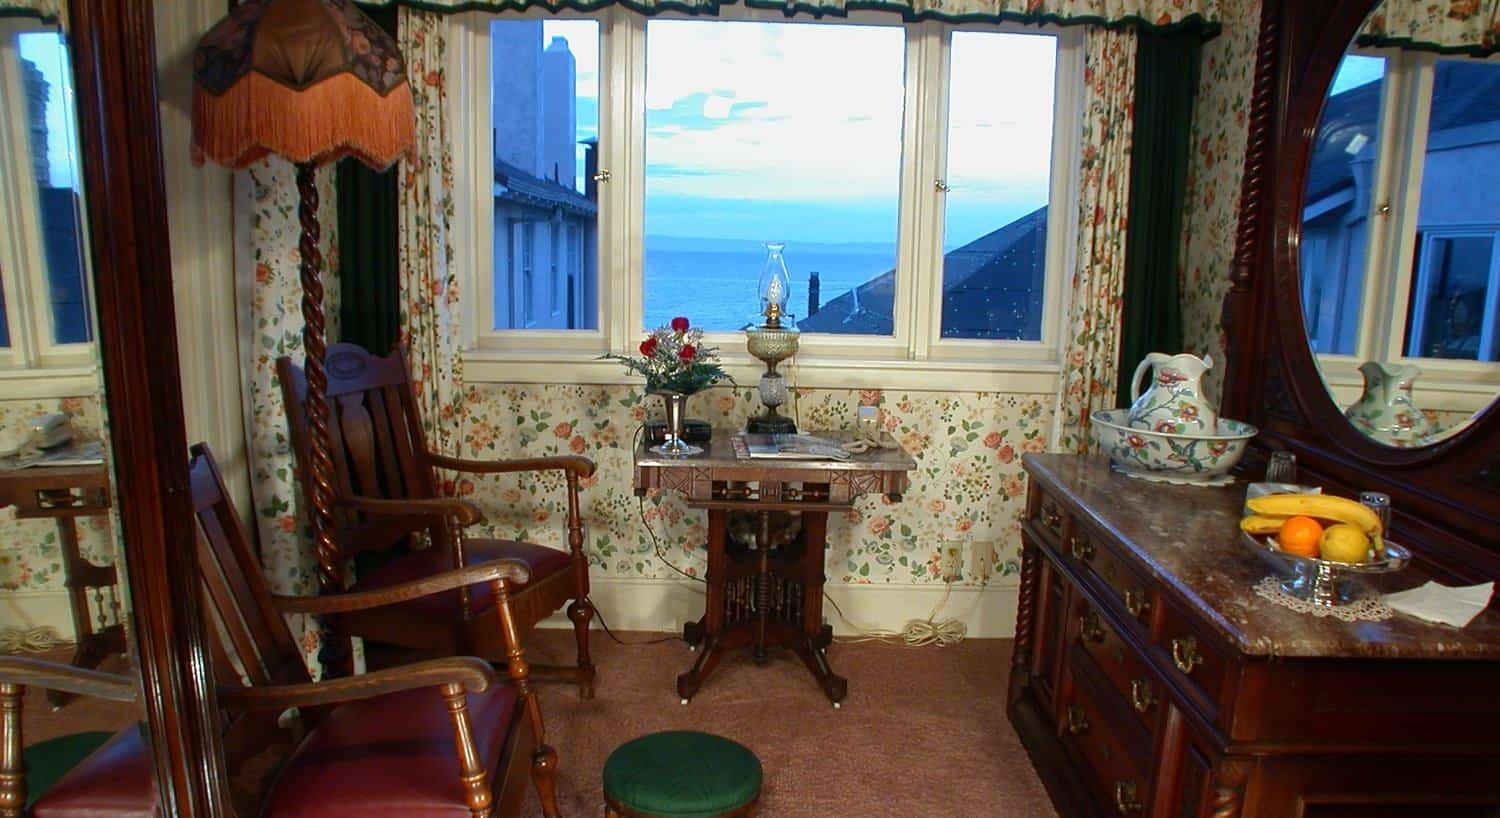 Malarin guest room sitting area with windows, two chairs, small table, dresser with mirror and ocean views